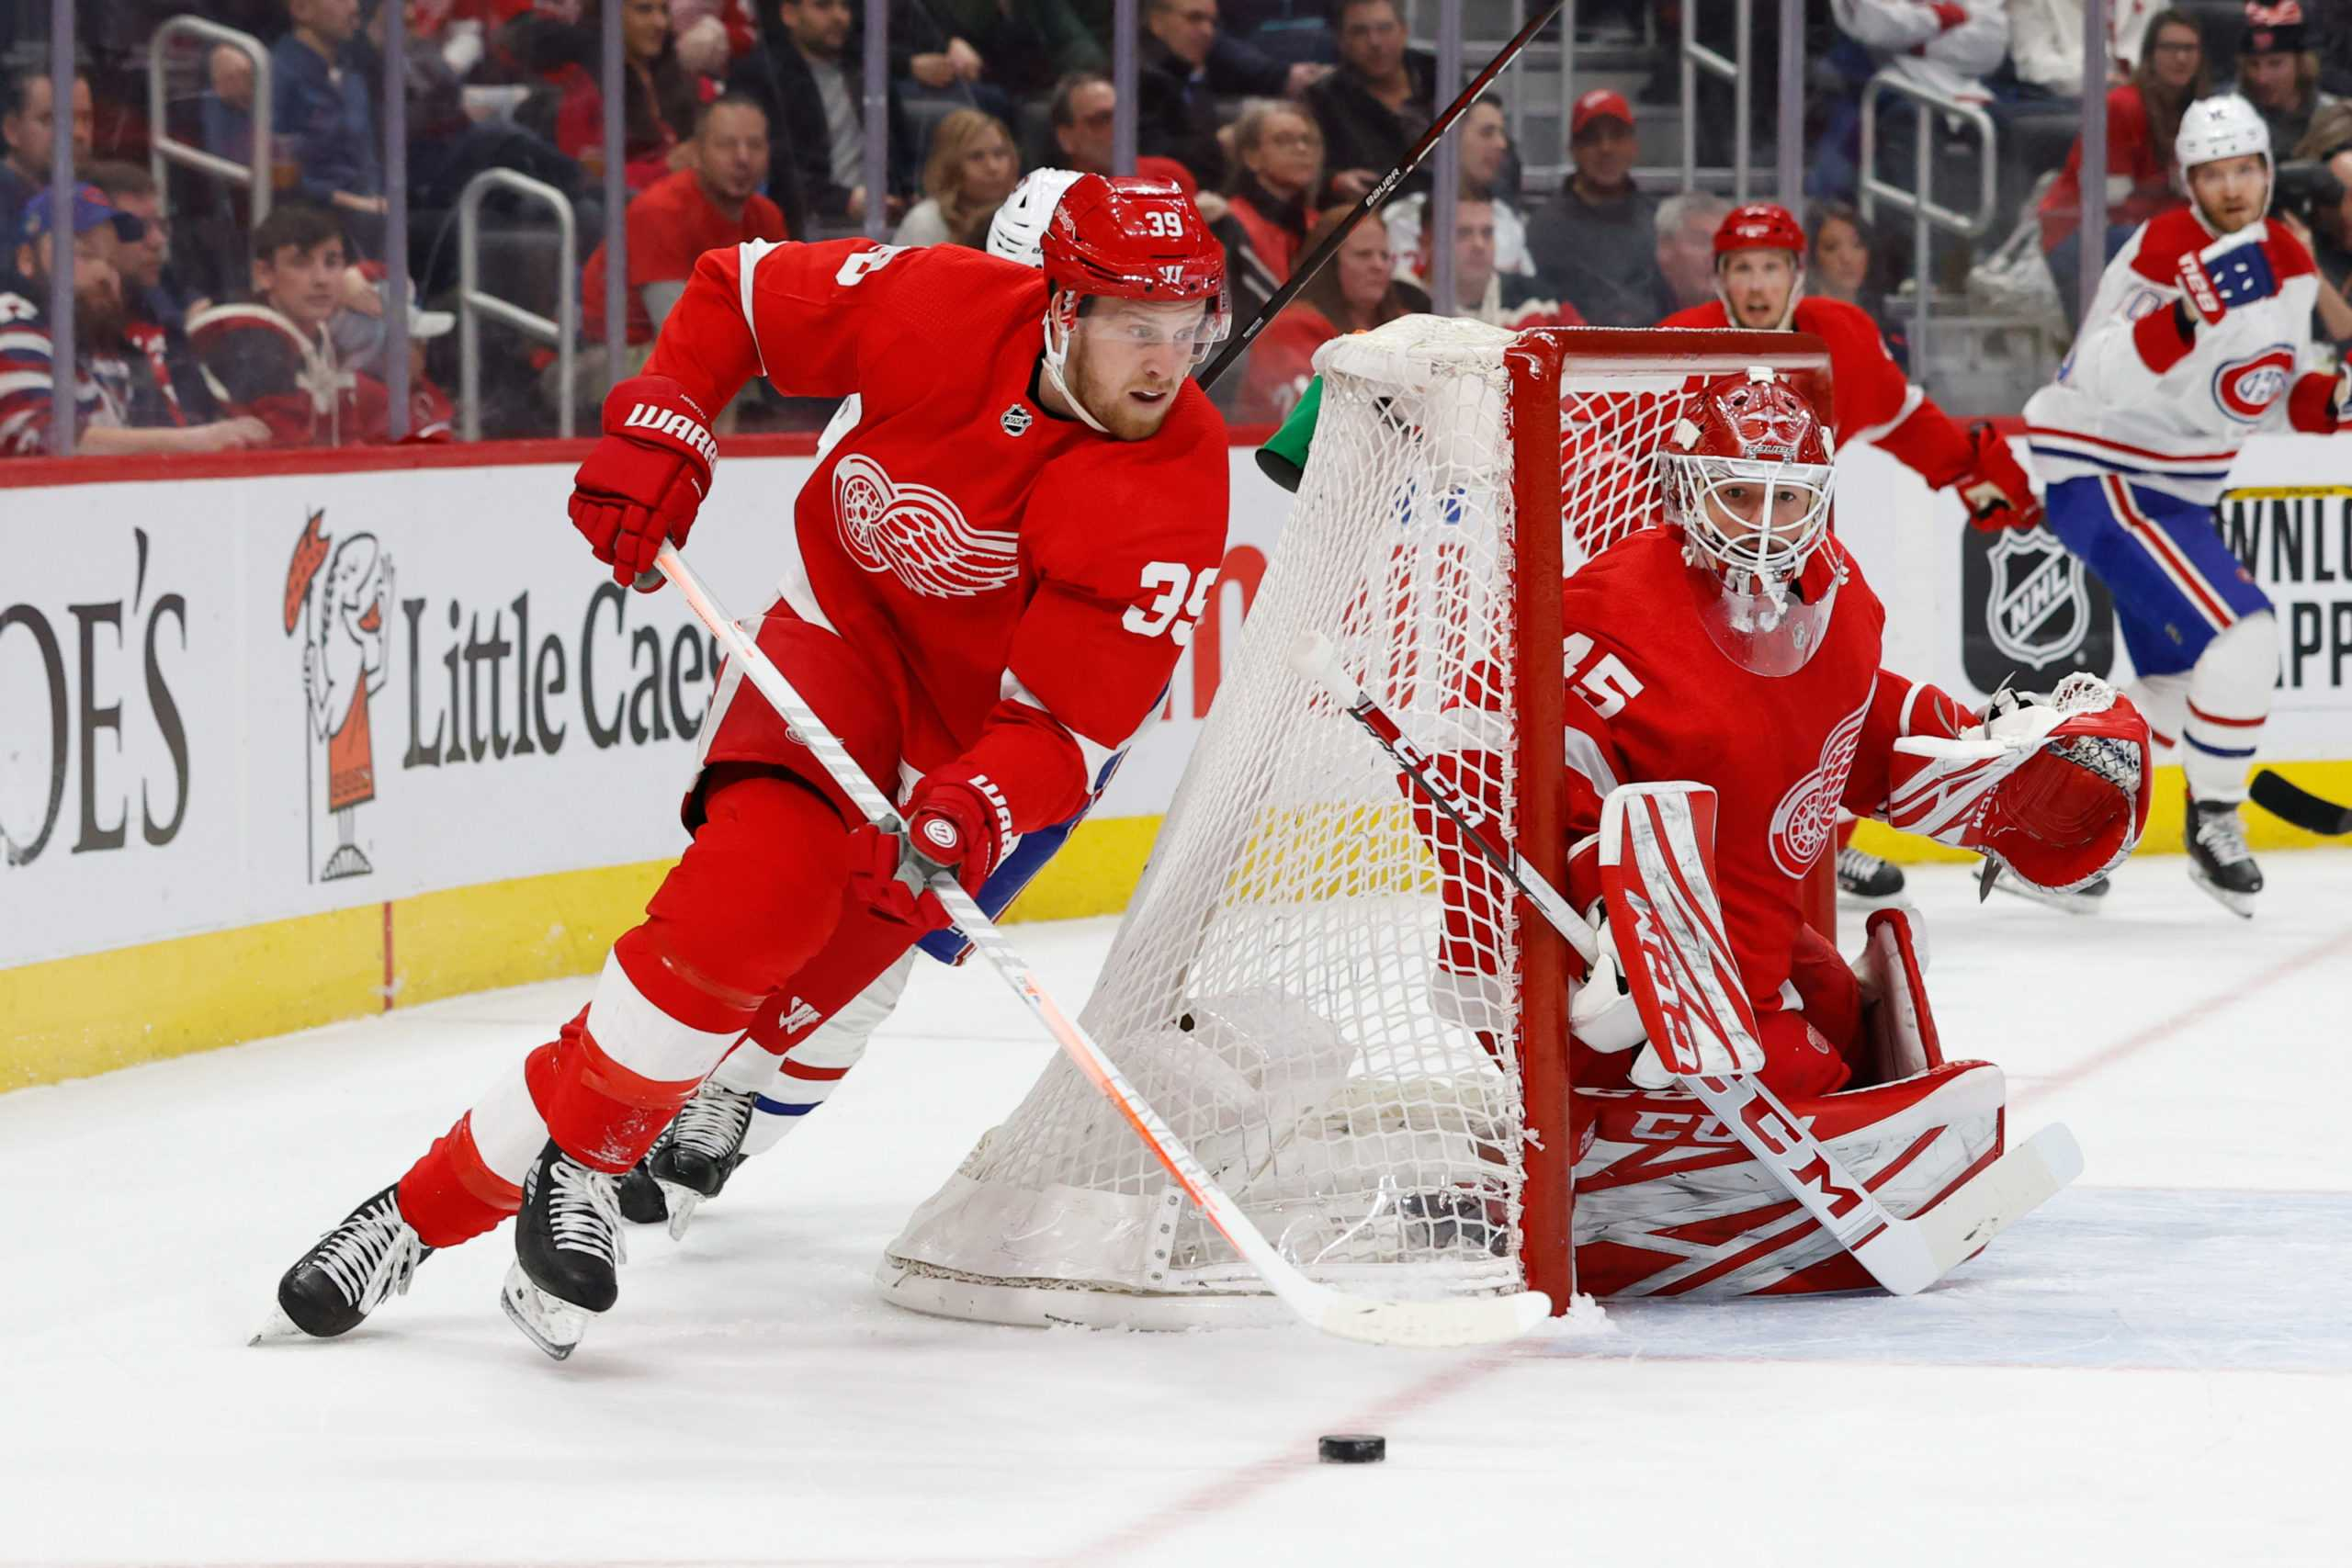 NHL Central Division Preview: Detroit Red Wings